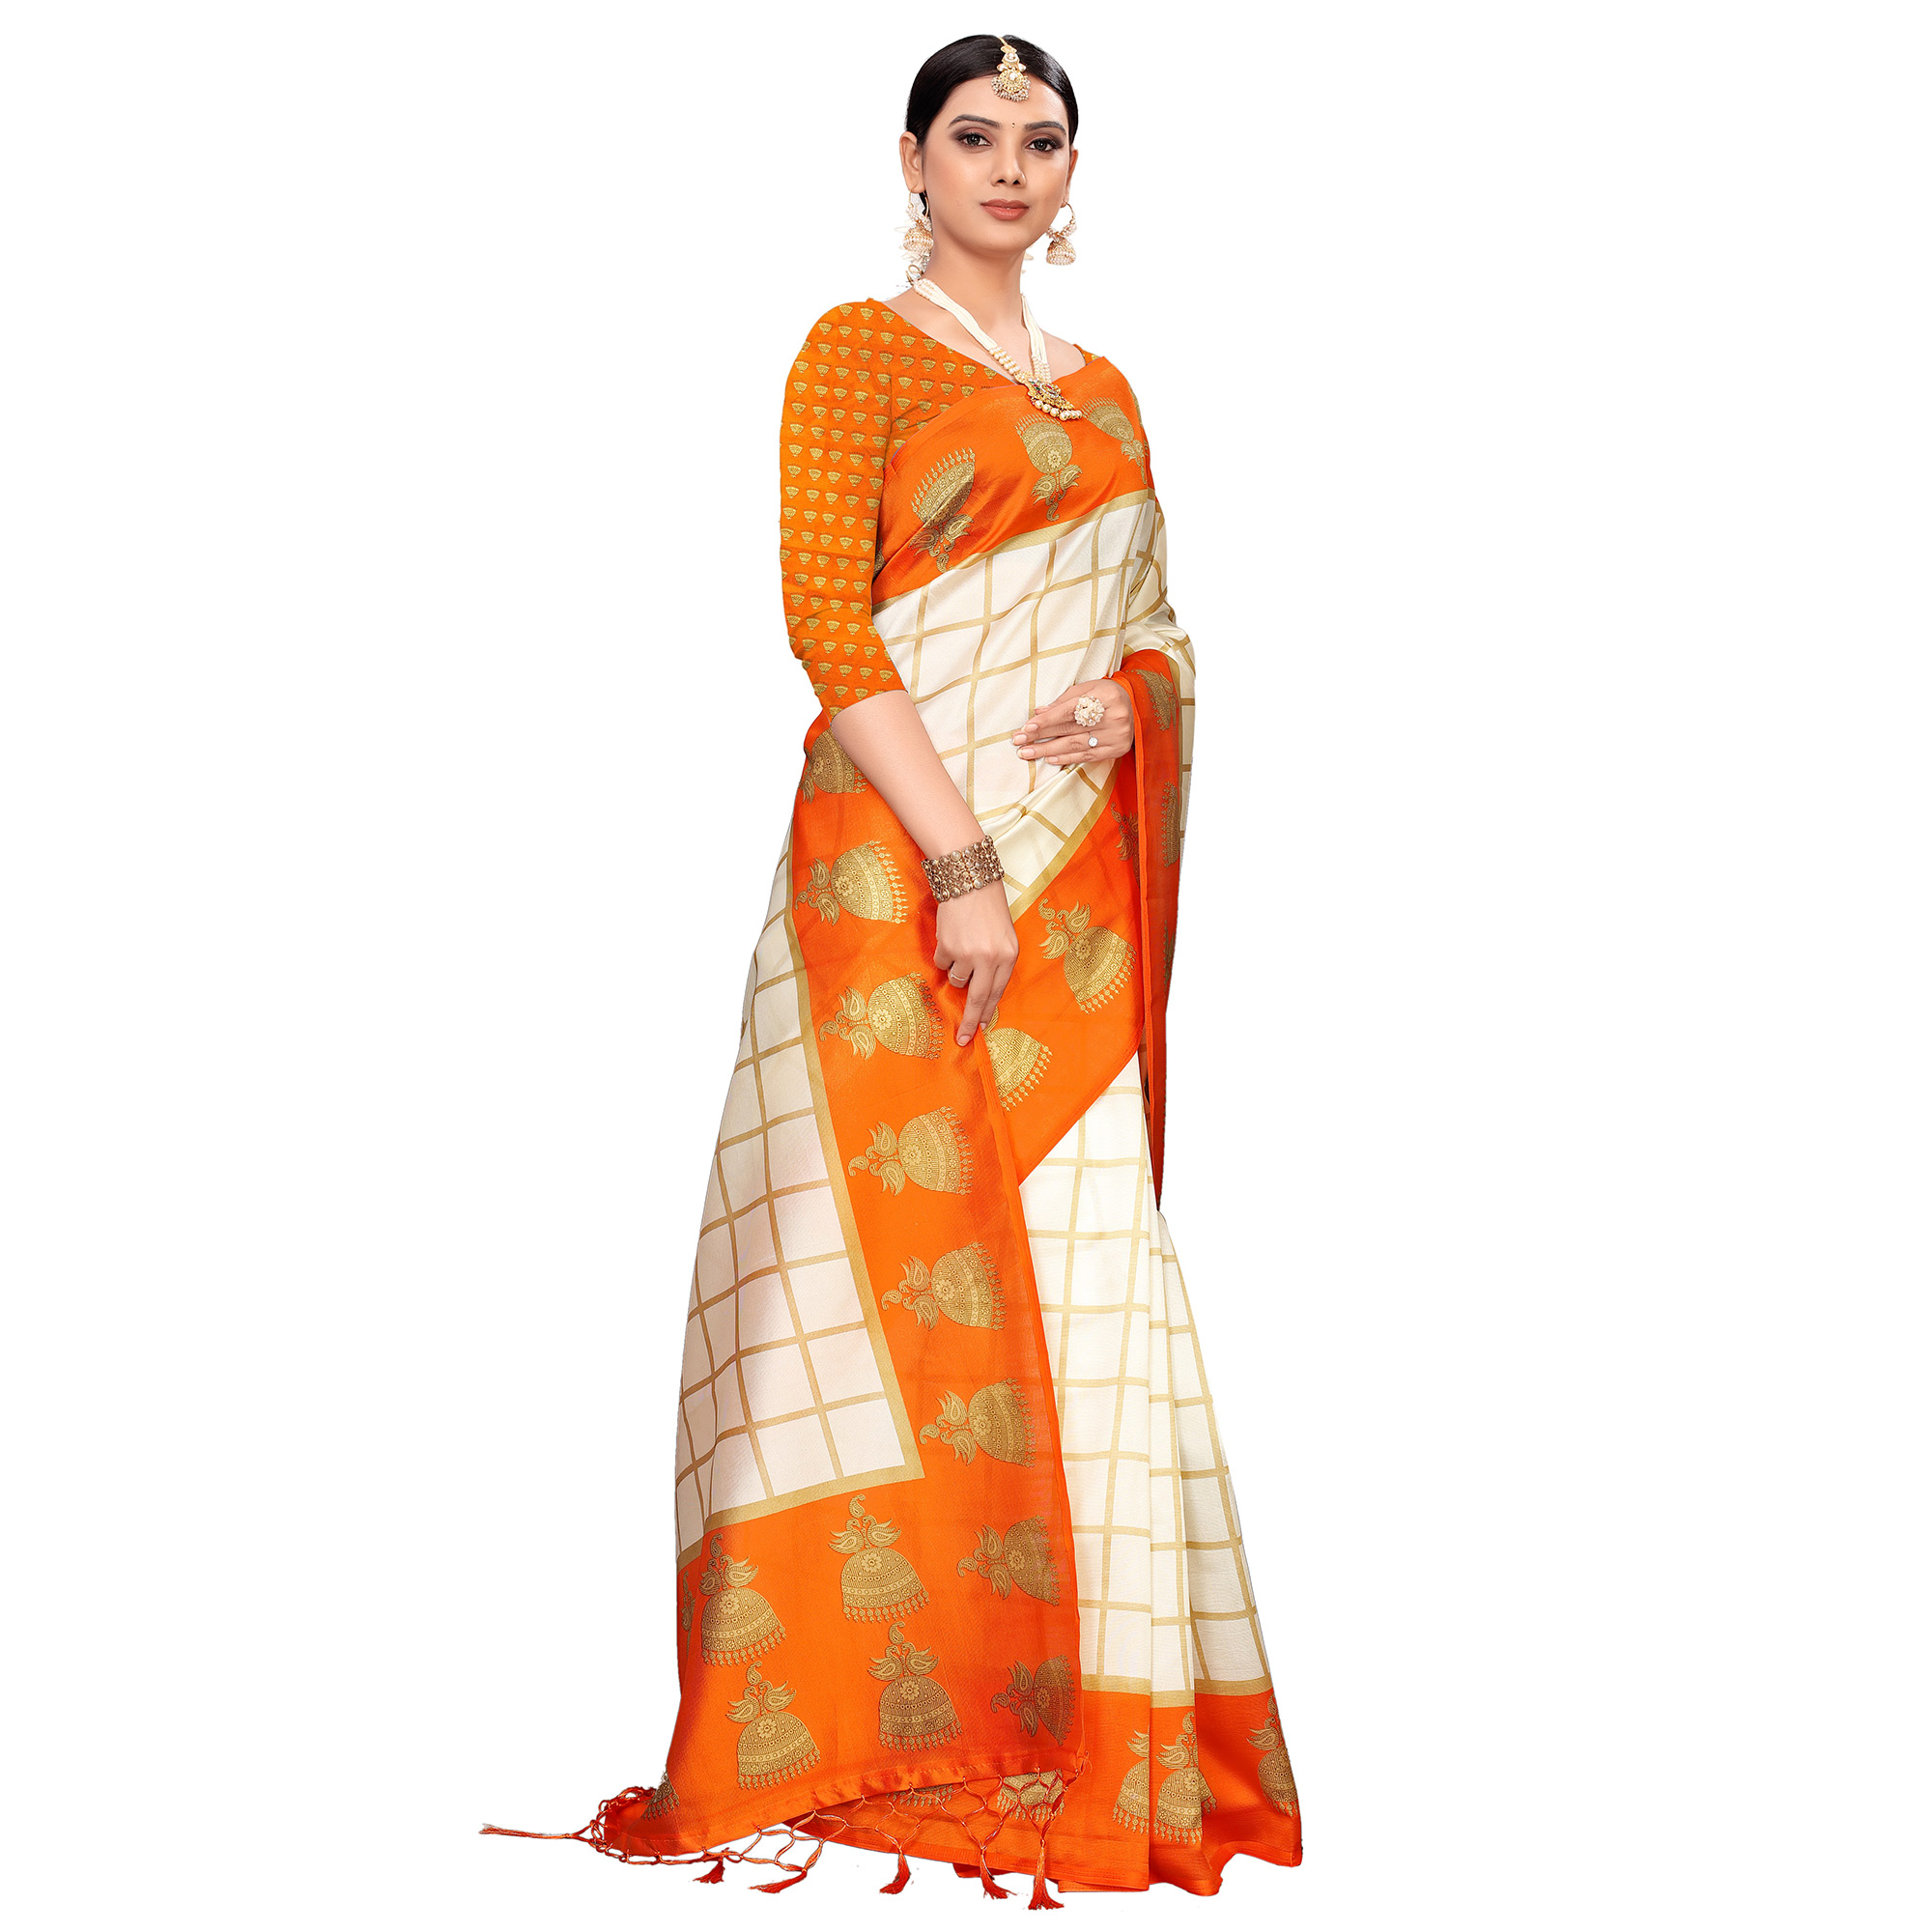 Jazzy Off White-Orange Colored Festive Wear Printed Mysore Silk Saree